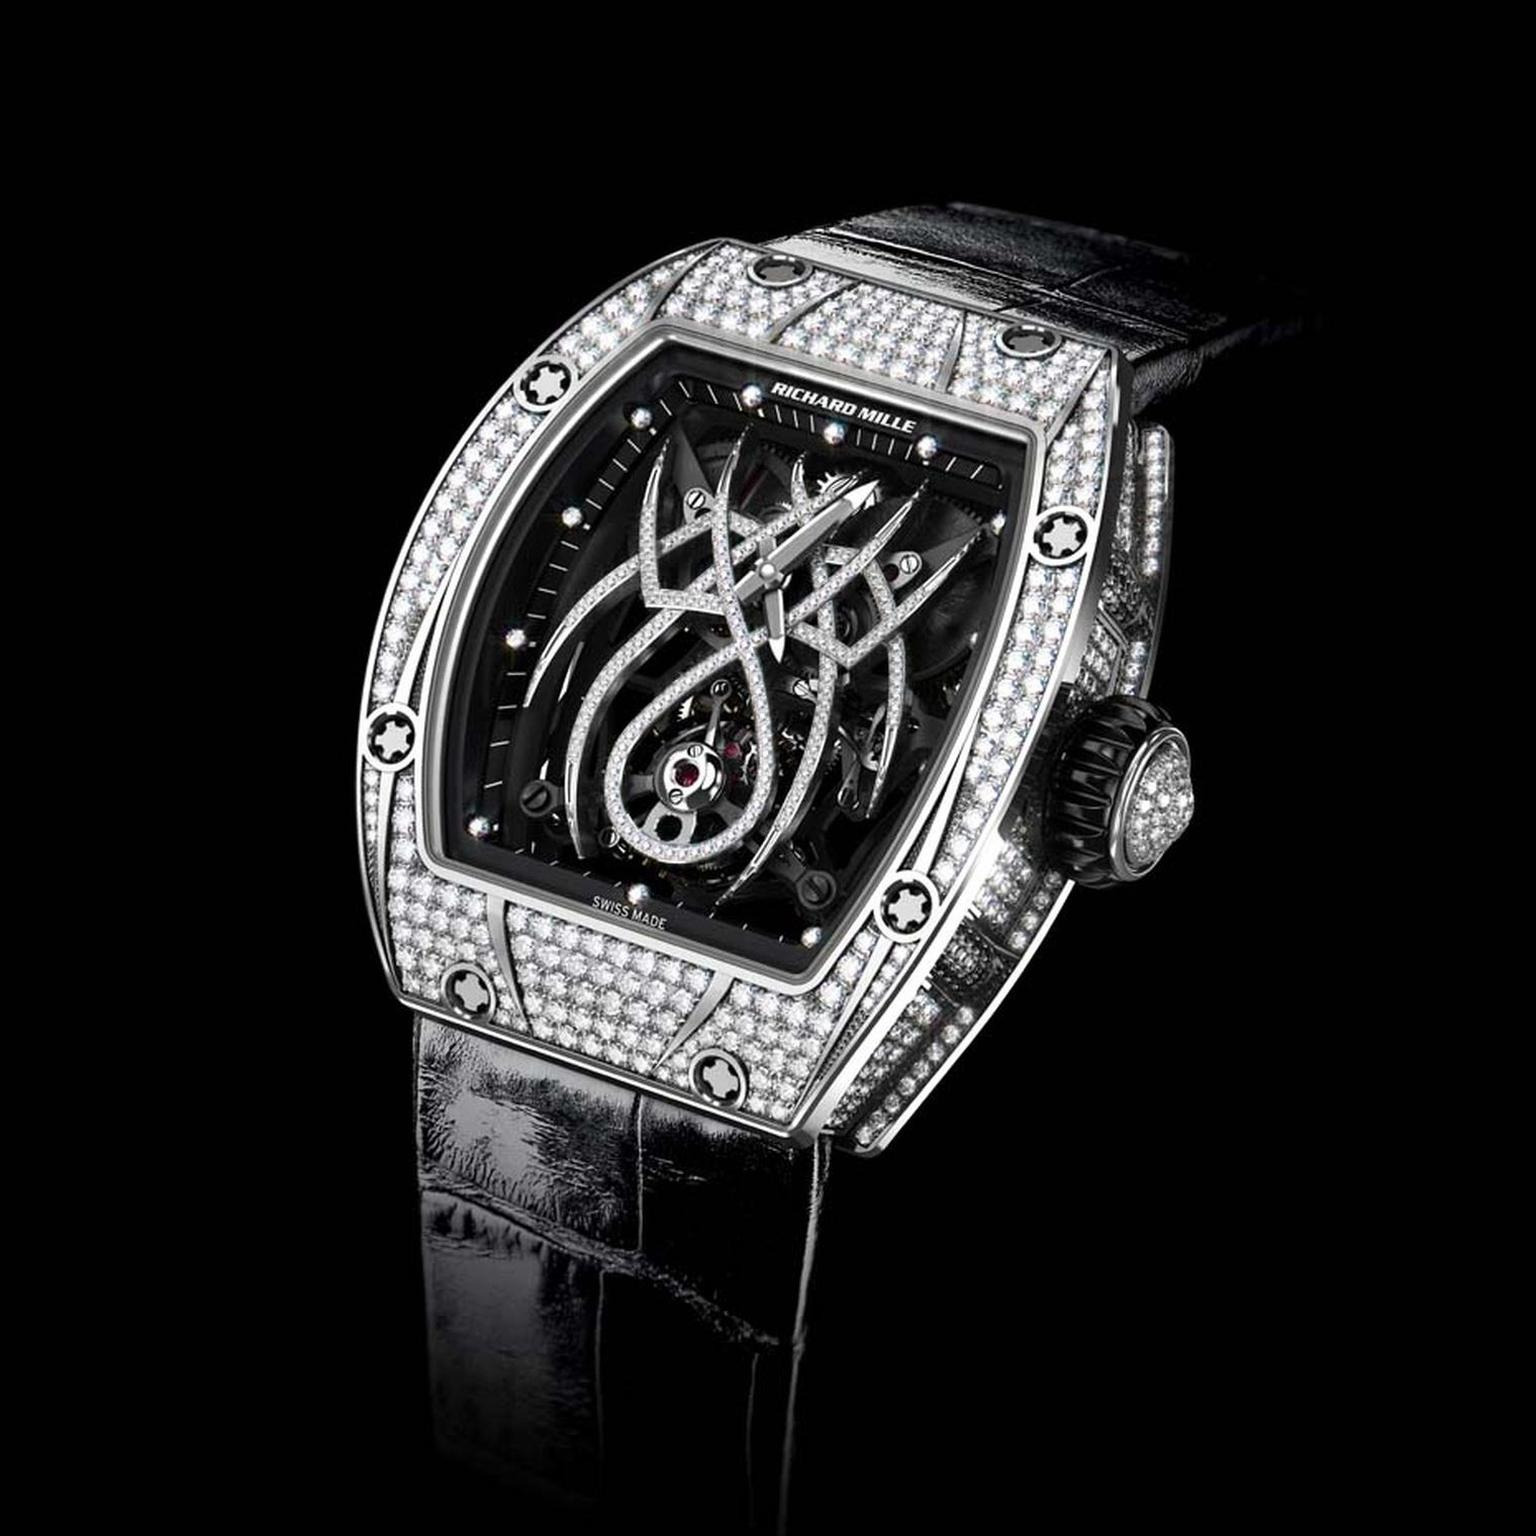 Designed in collaboration with Natalie Portman, the tourbillon movement in the Richard Mille RM19-01 features a diamond-set spider that spreads his tapered legs across the dial while his abdomen holds the tourbillon cage.